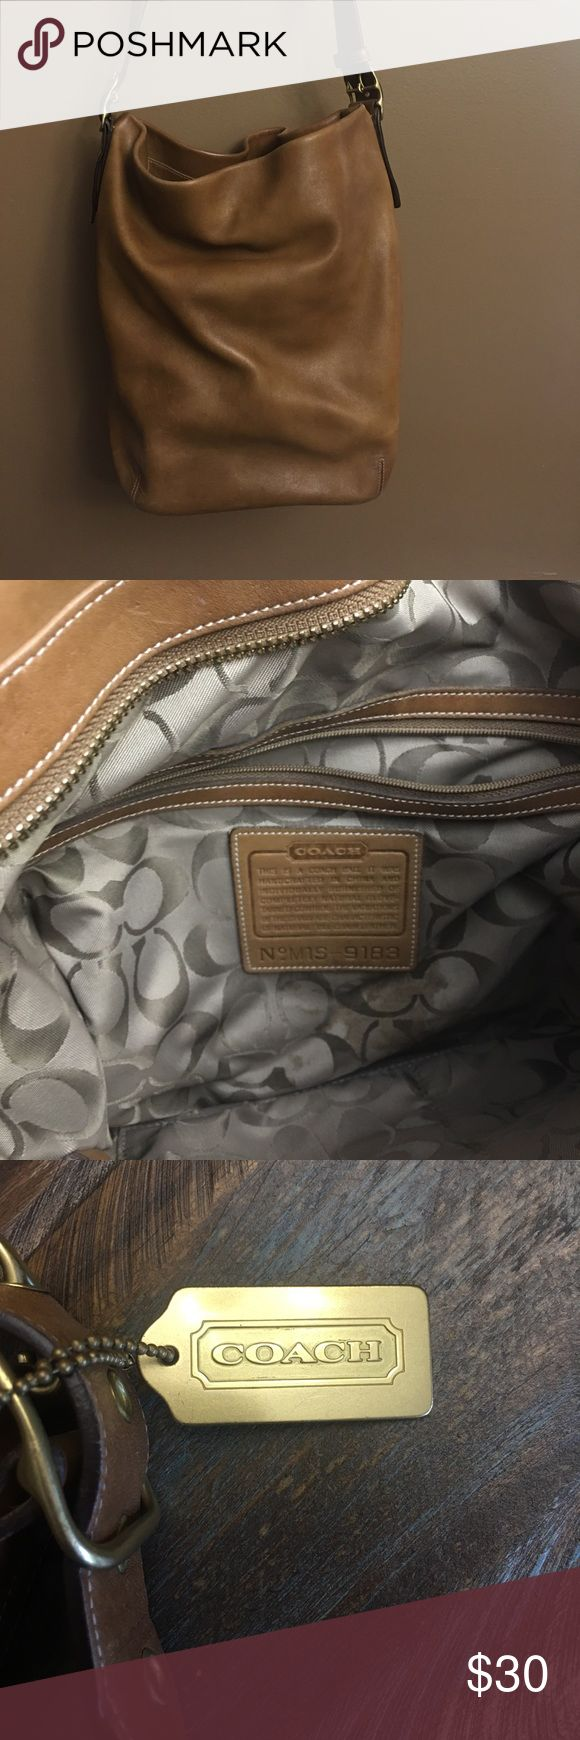 Coach Pocketbook Authentic Coach big bag.. great condition. It holds a lot. As you can see from photos it has been used but not abused & is still full of life Coach Bags Shoulder Bags